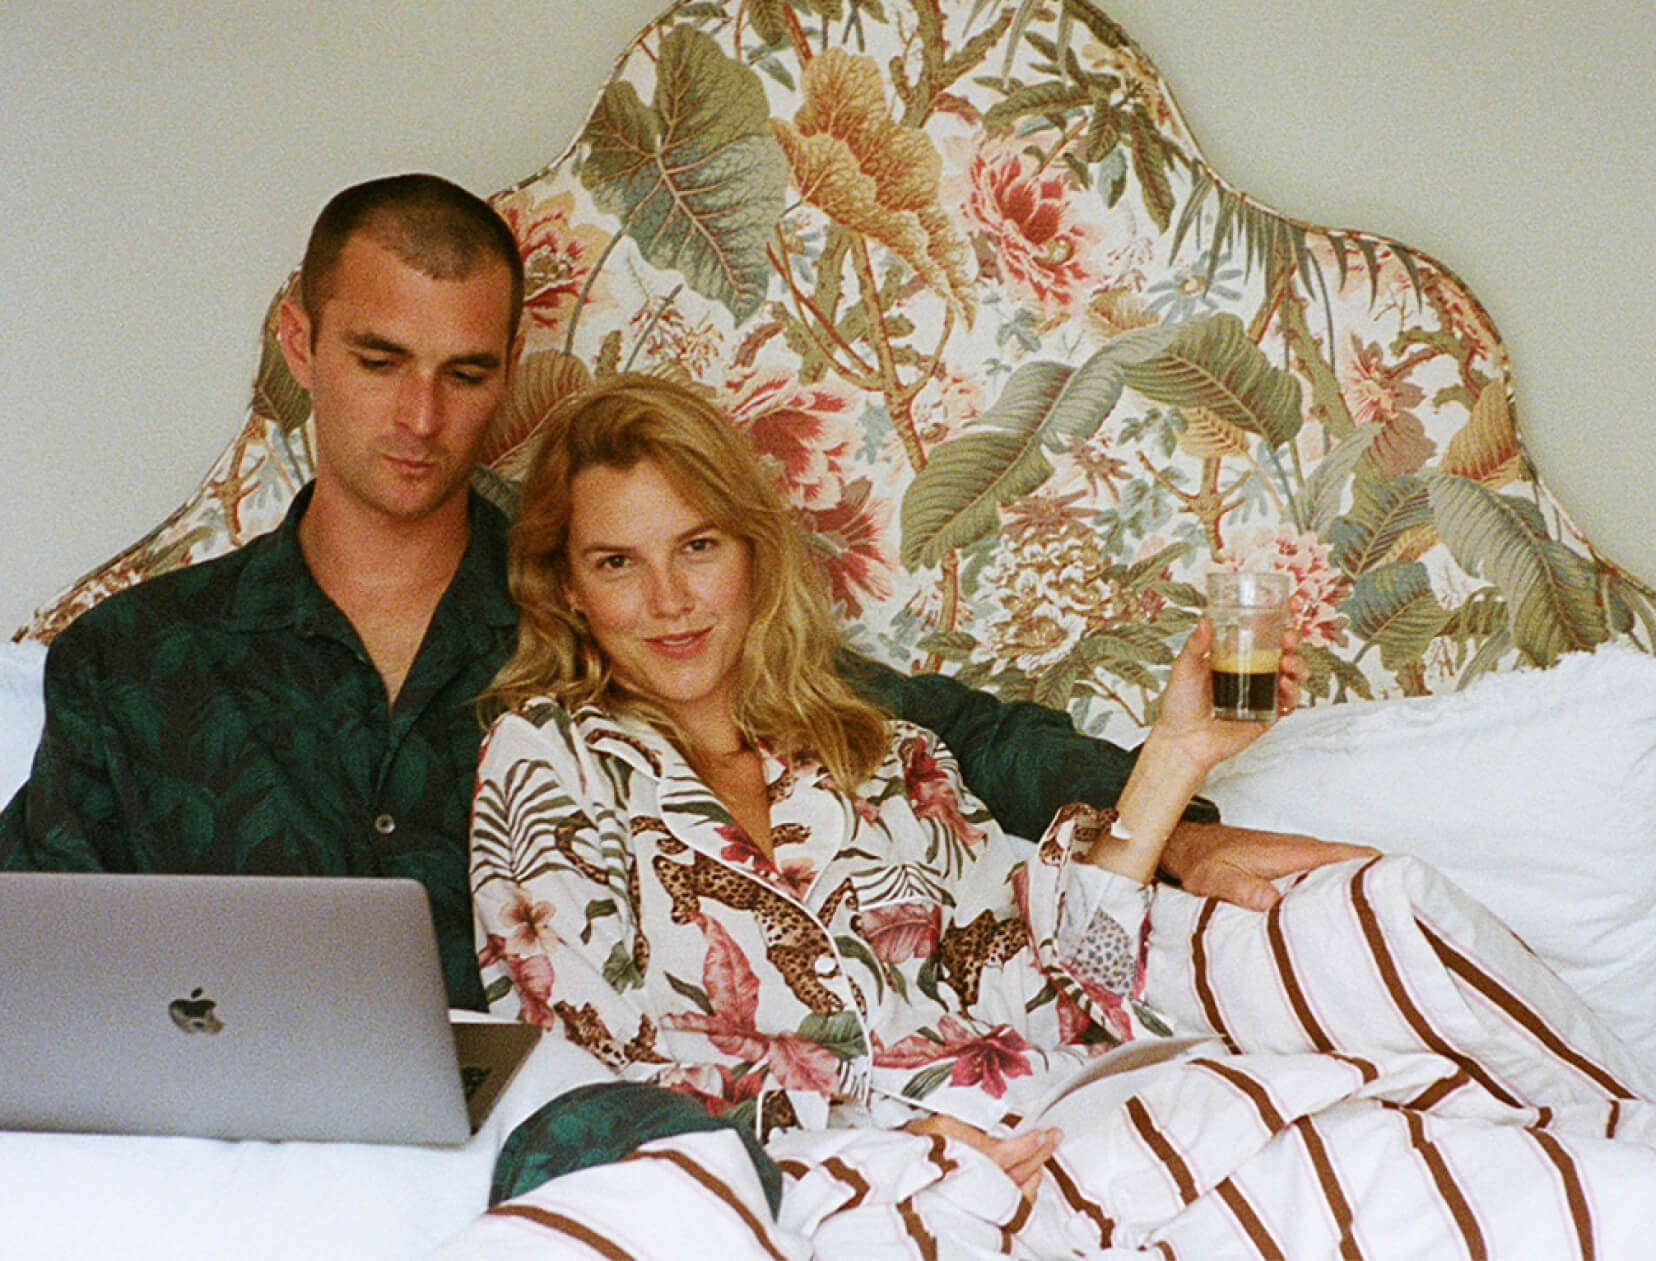 man and woman in pajamas